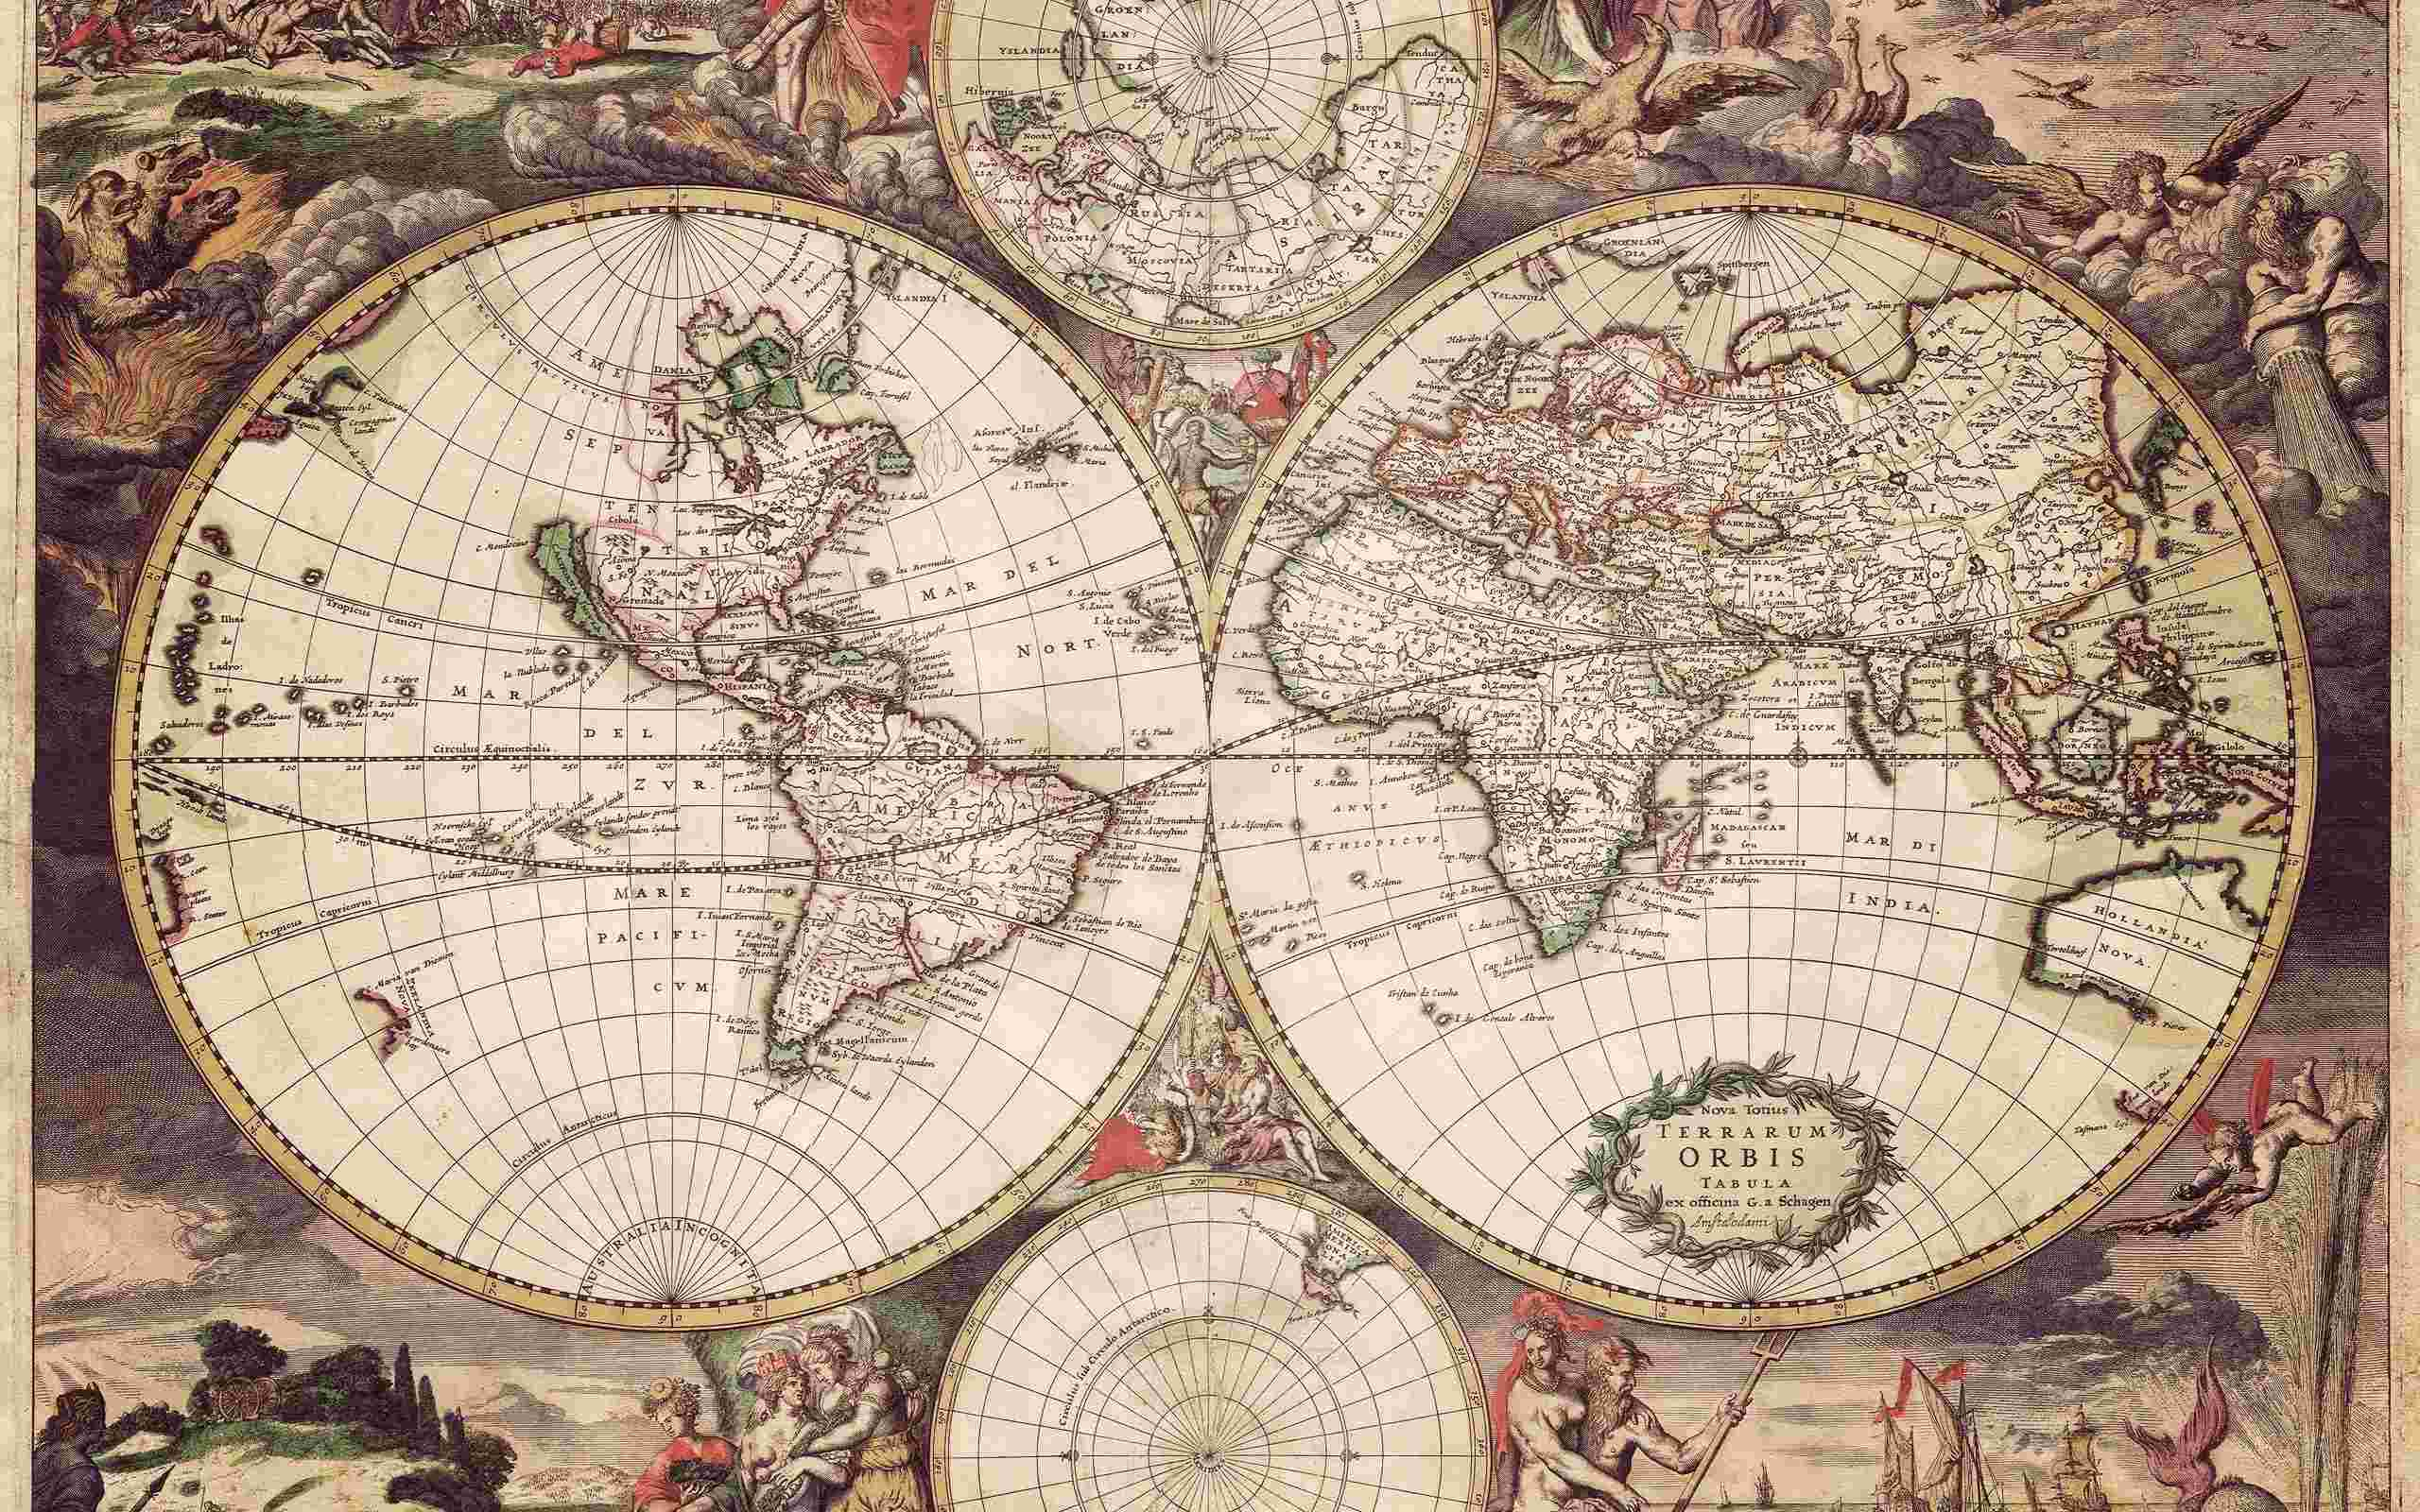 World map desktop wallpaper hd wallpapersafari old world map 1689 wallpaper unsorted other wallpaper 2560x1600 gumiabroncs Gallery